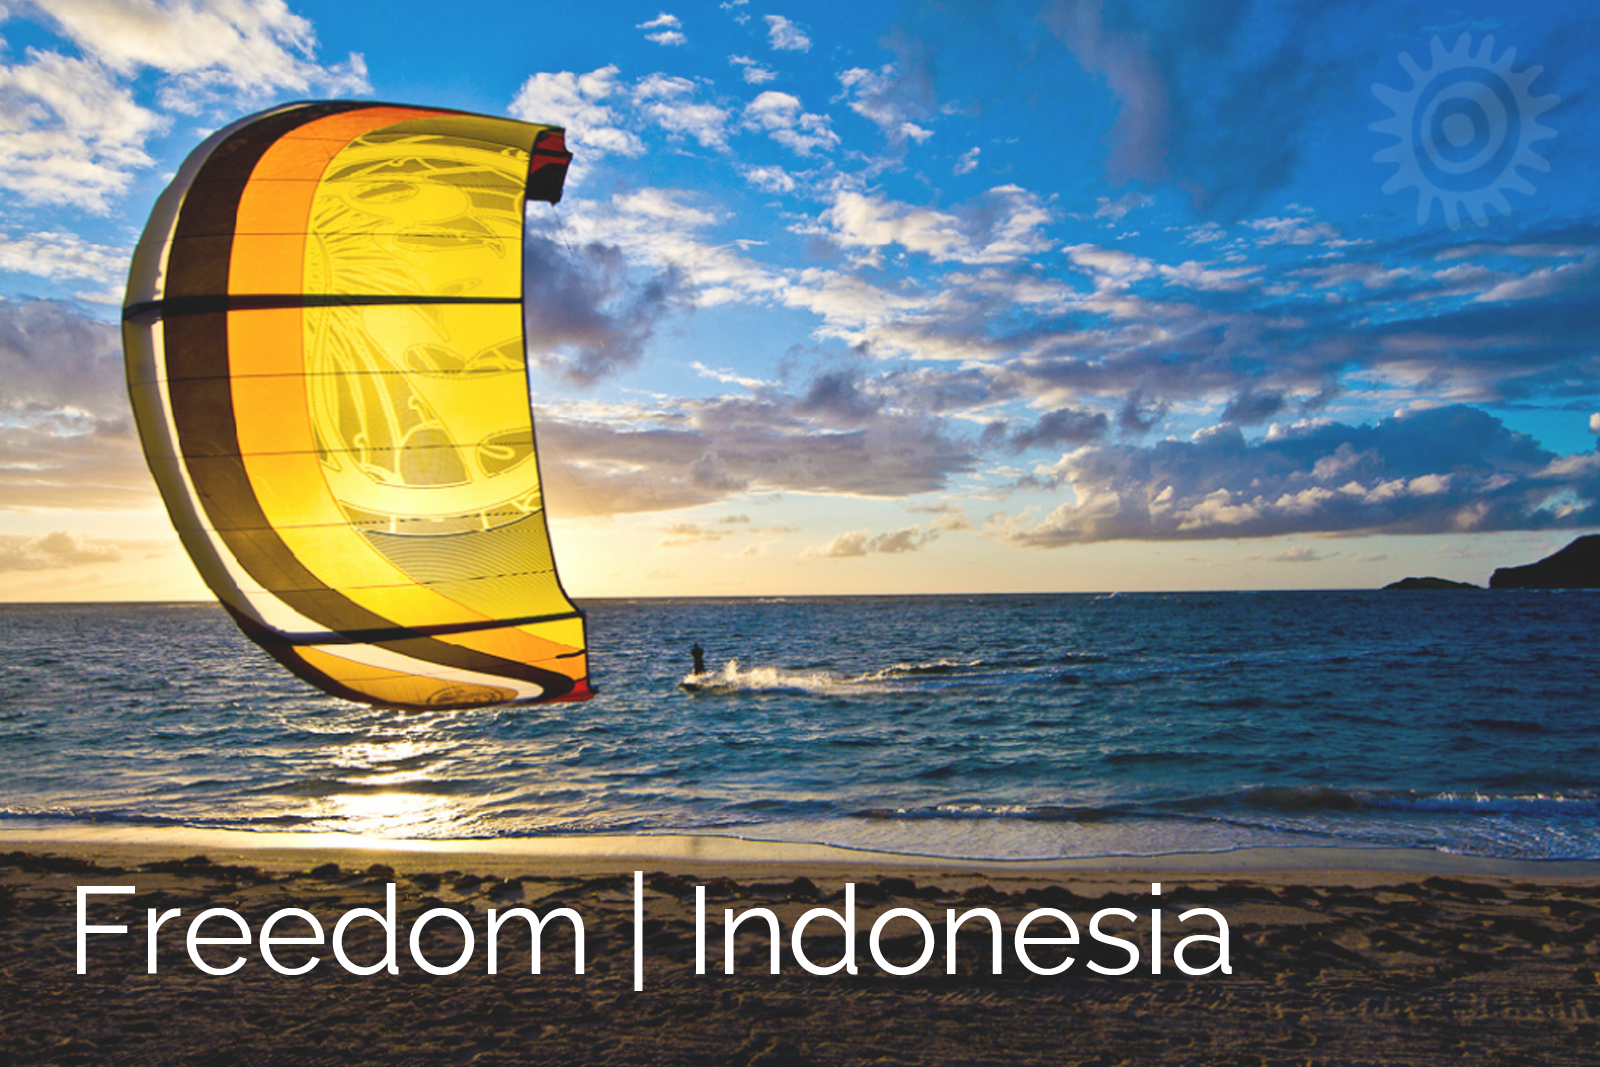 Freedom | Indonesia